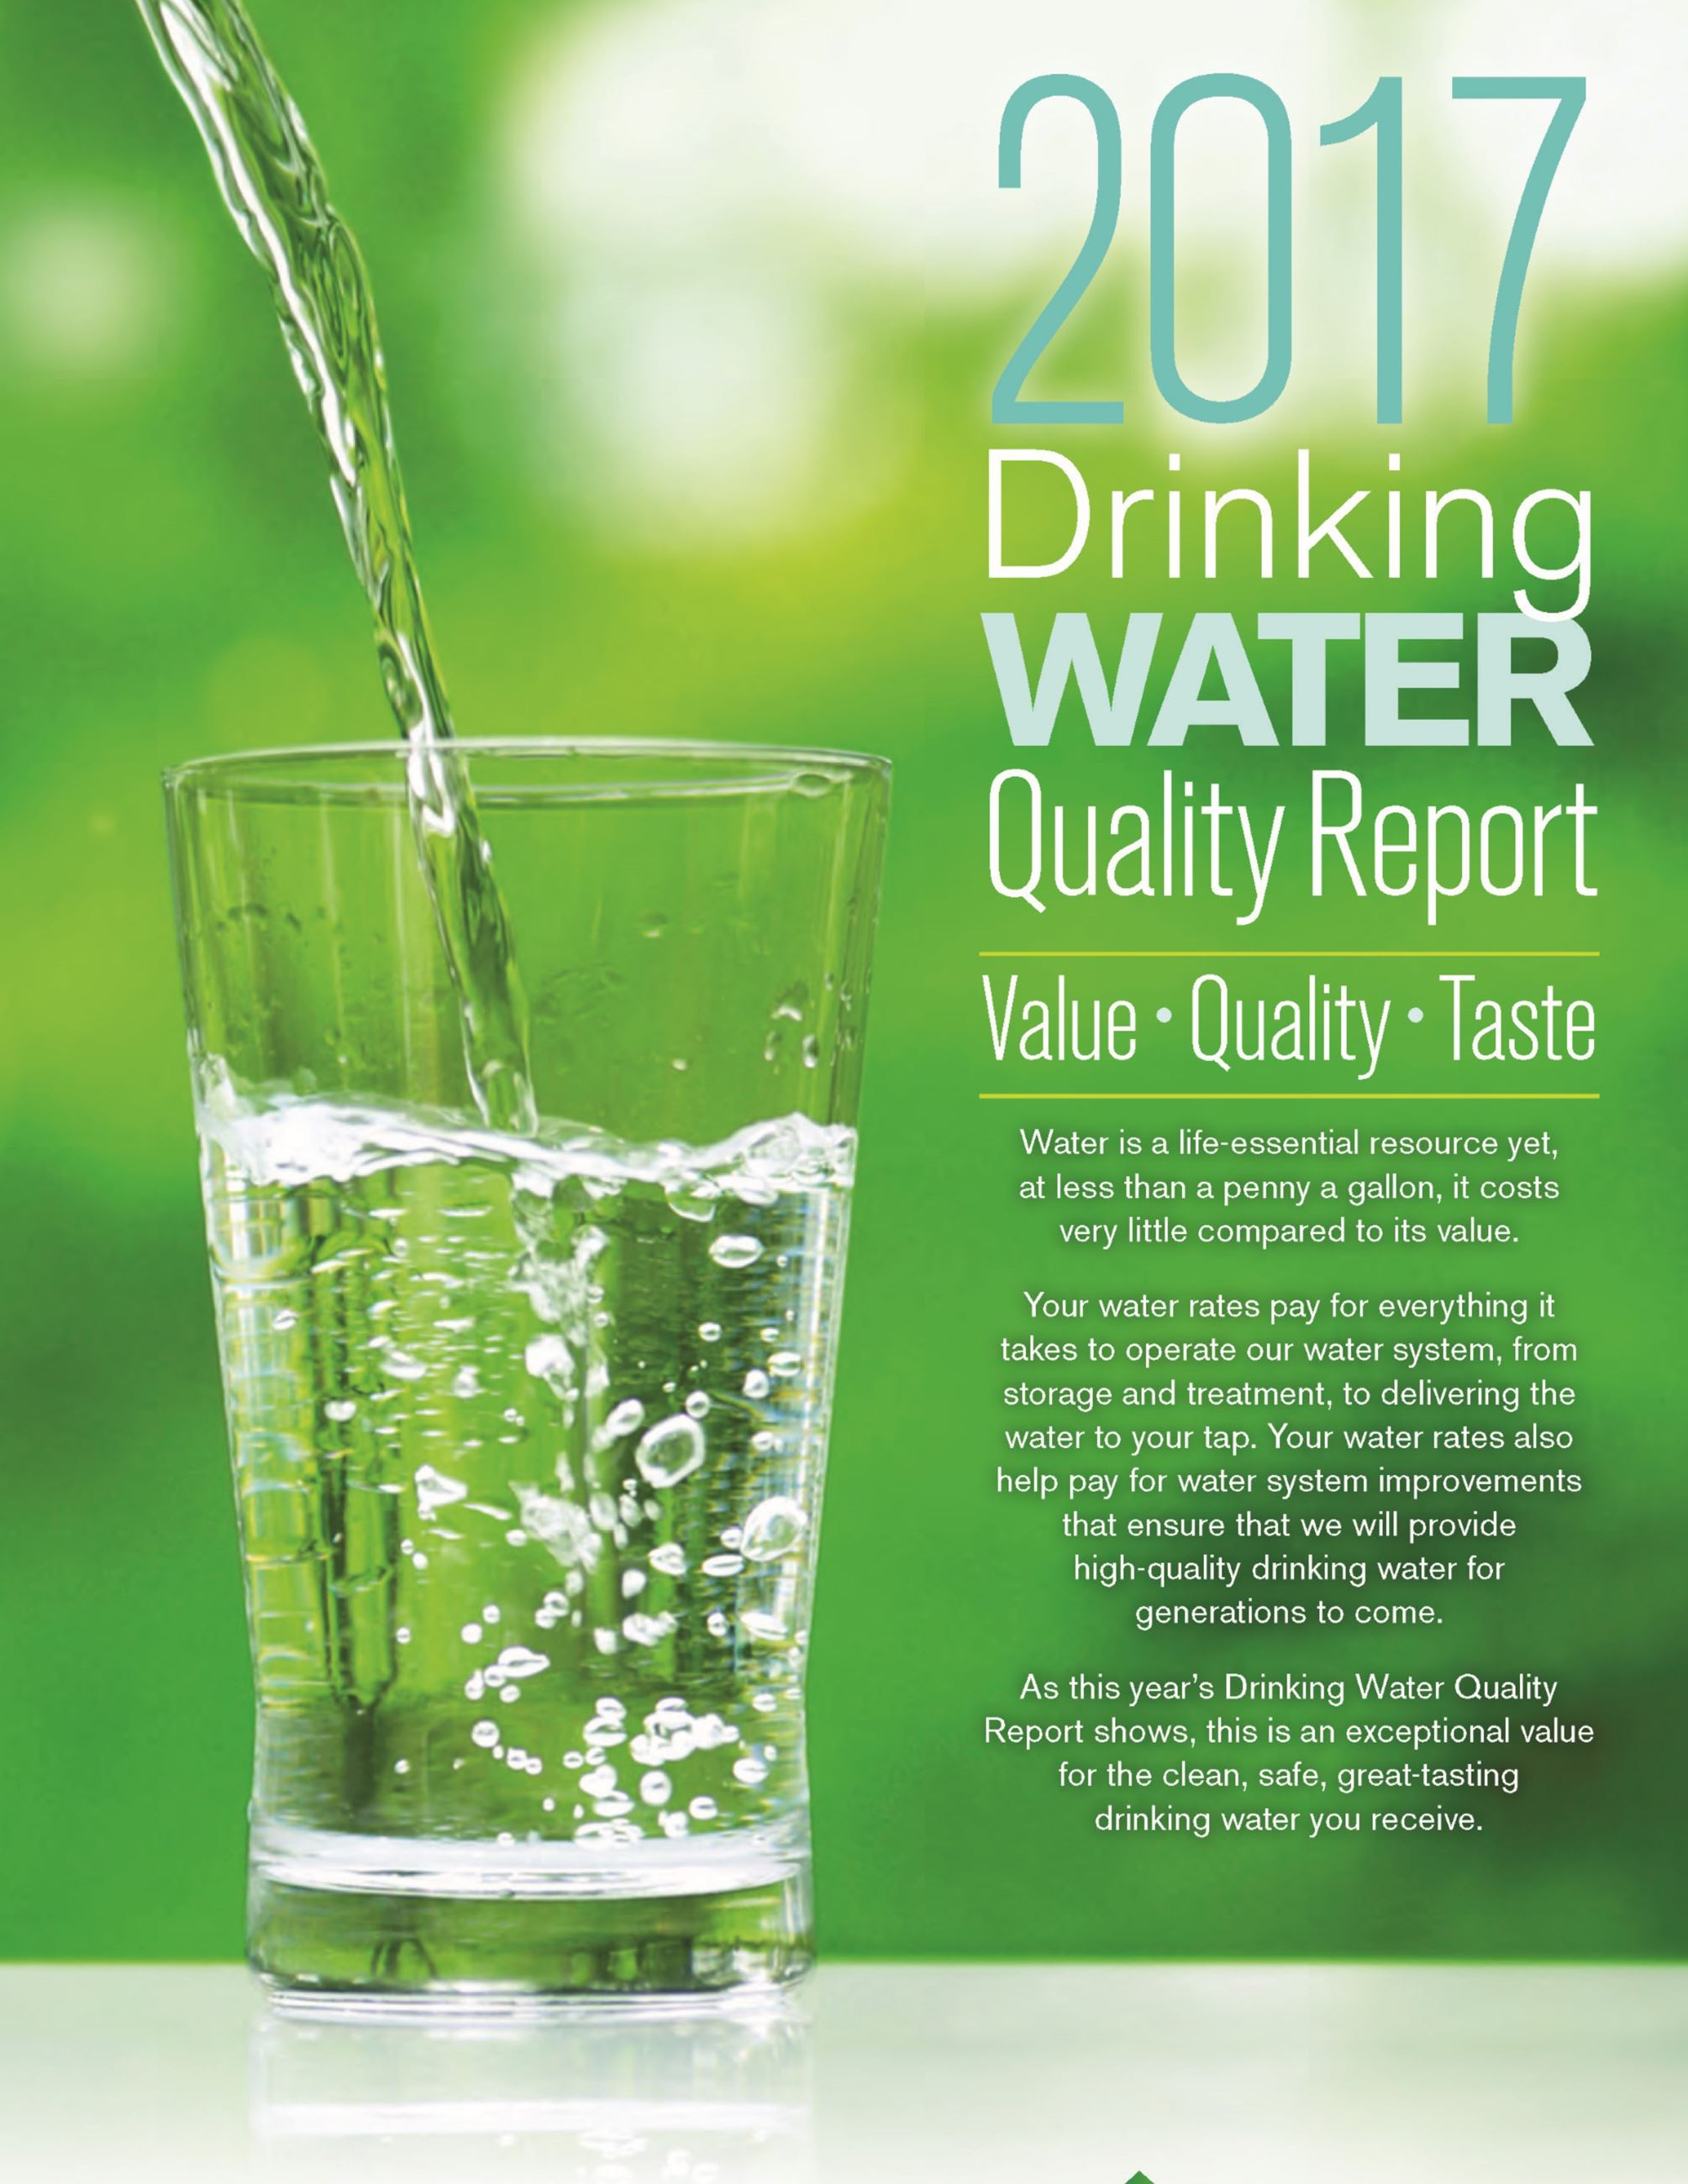 2017 Water Quality Report Opens in new window